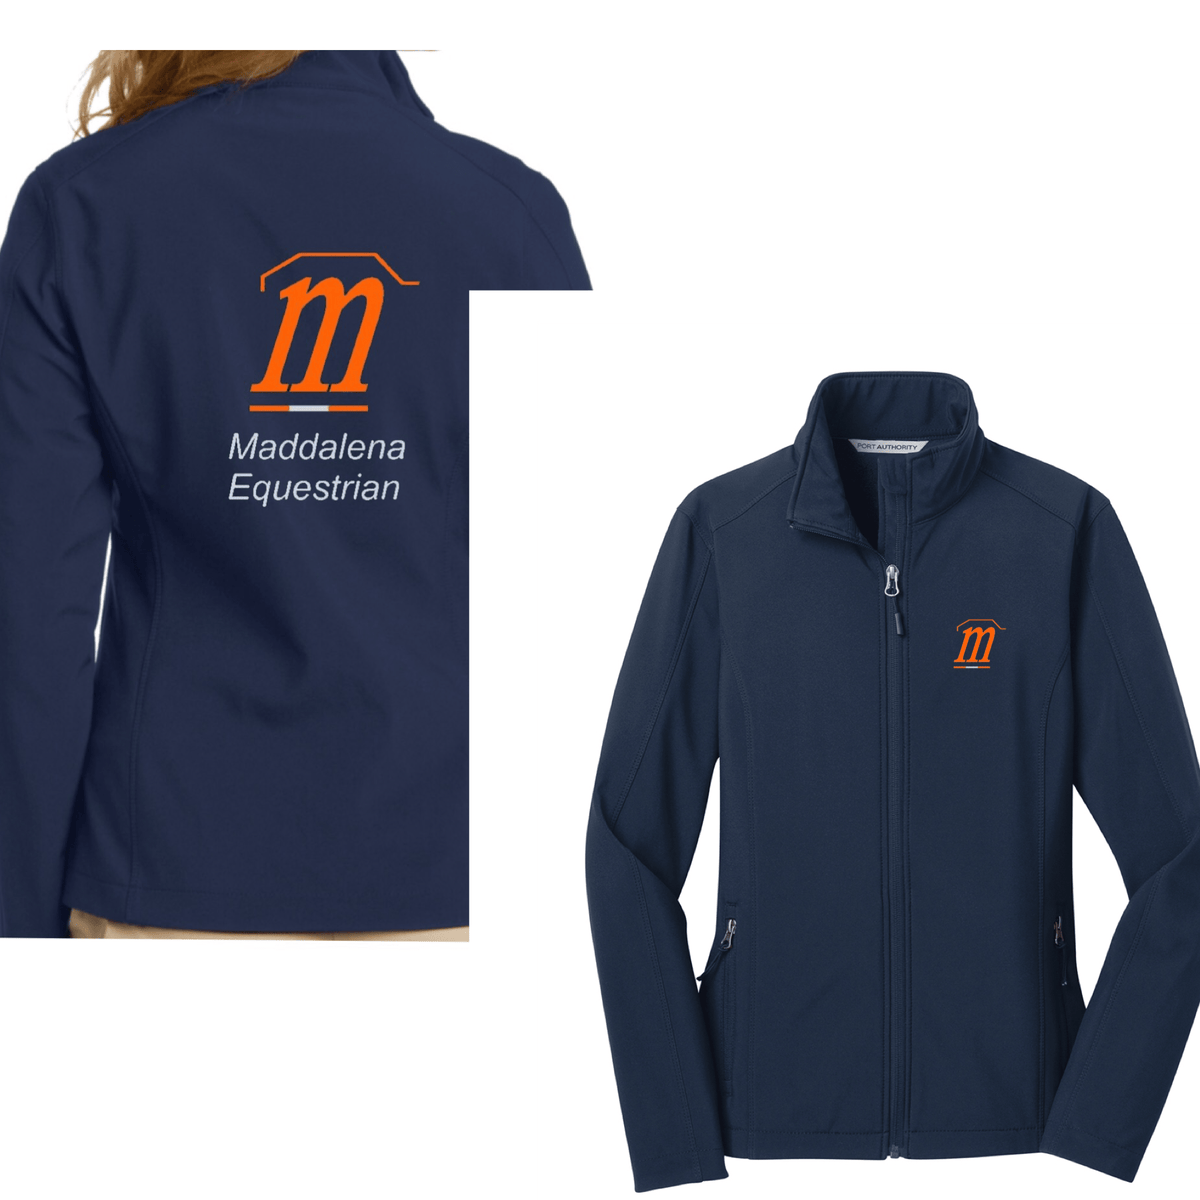 Equestrian Team Apparel Custom Team Jackets Ladies / XSmall Maddalena Equestrian Shell Jacket equestrian team apparel online tack store mobile tack store custom farm apparel custom show stable clothing equestrian lifestyle horse show clothing riding clothes horses equestrian tack store